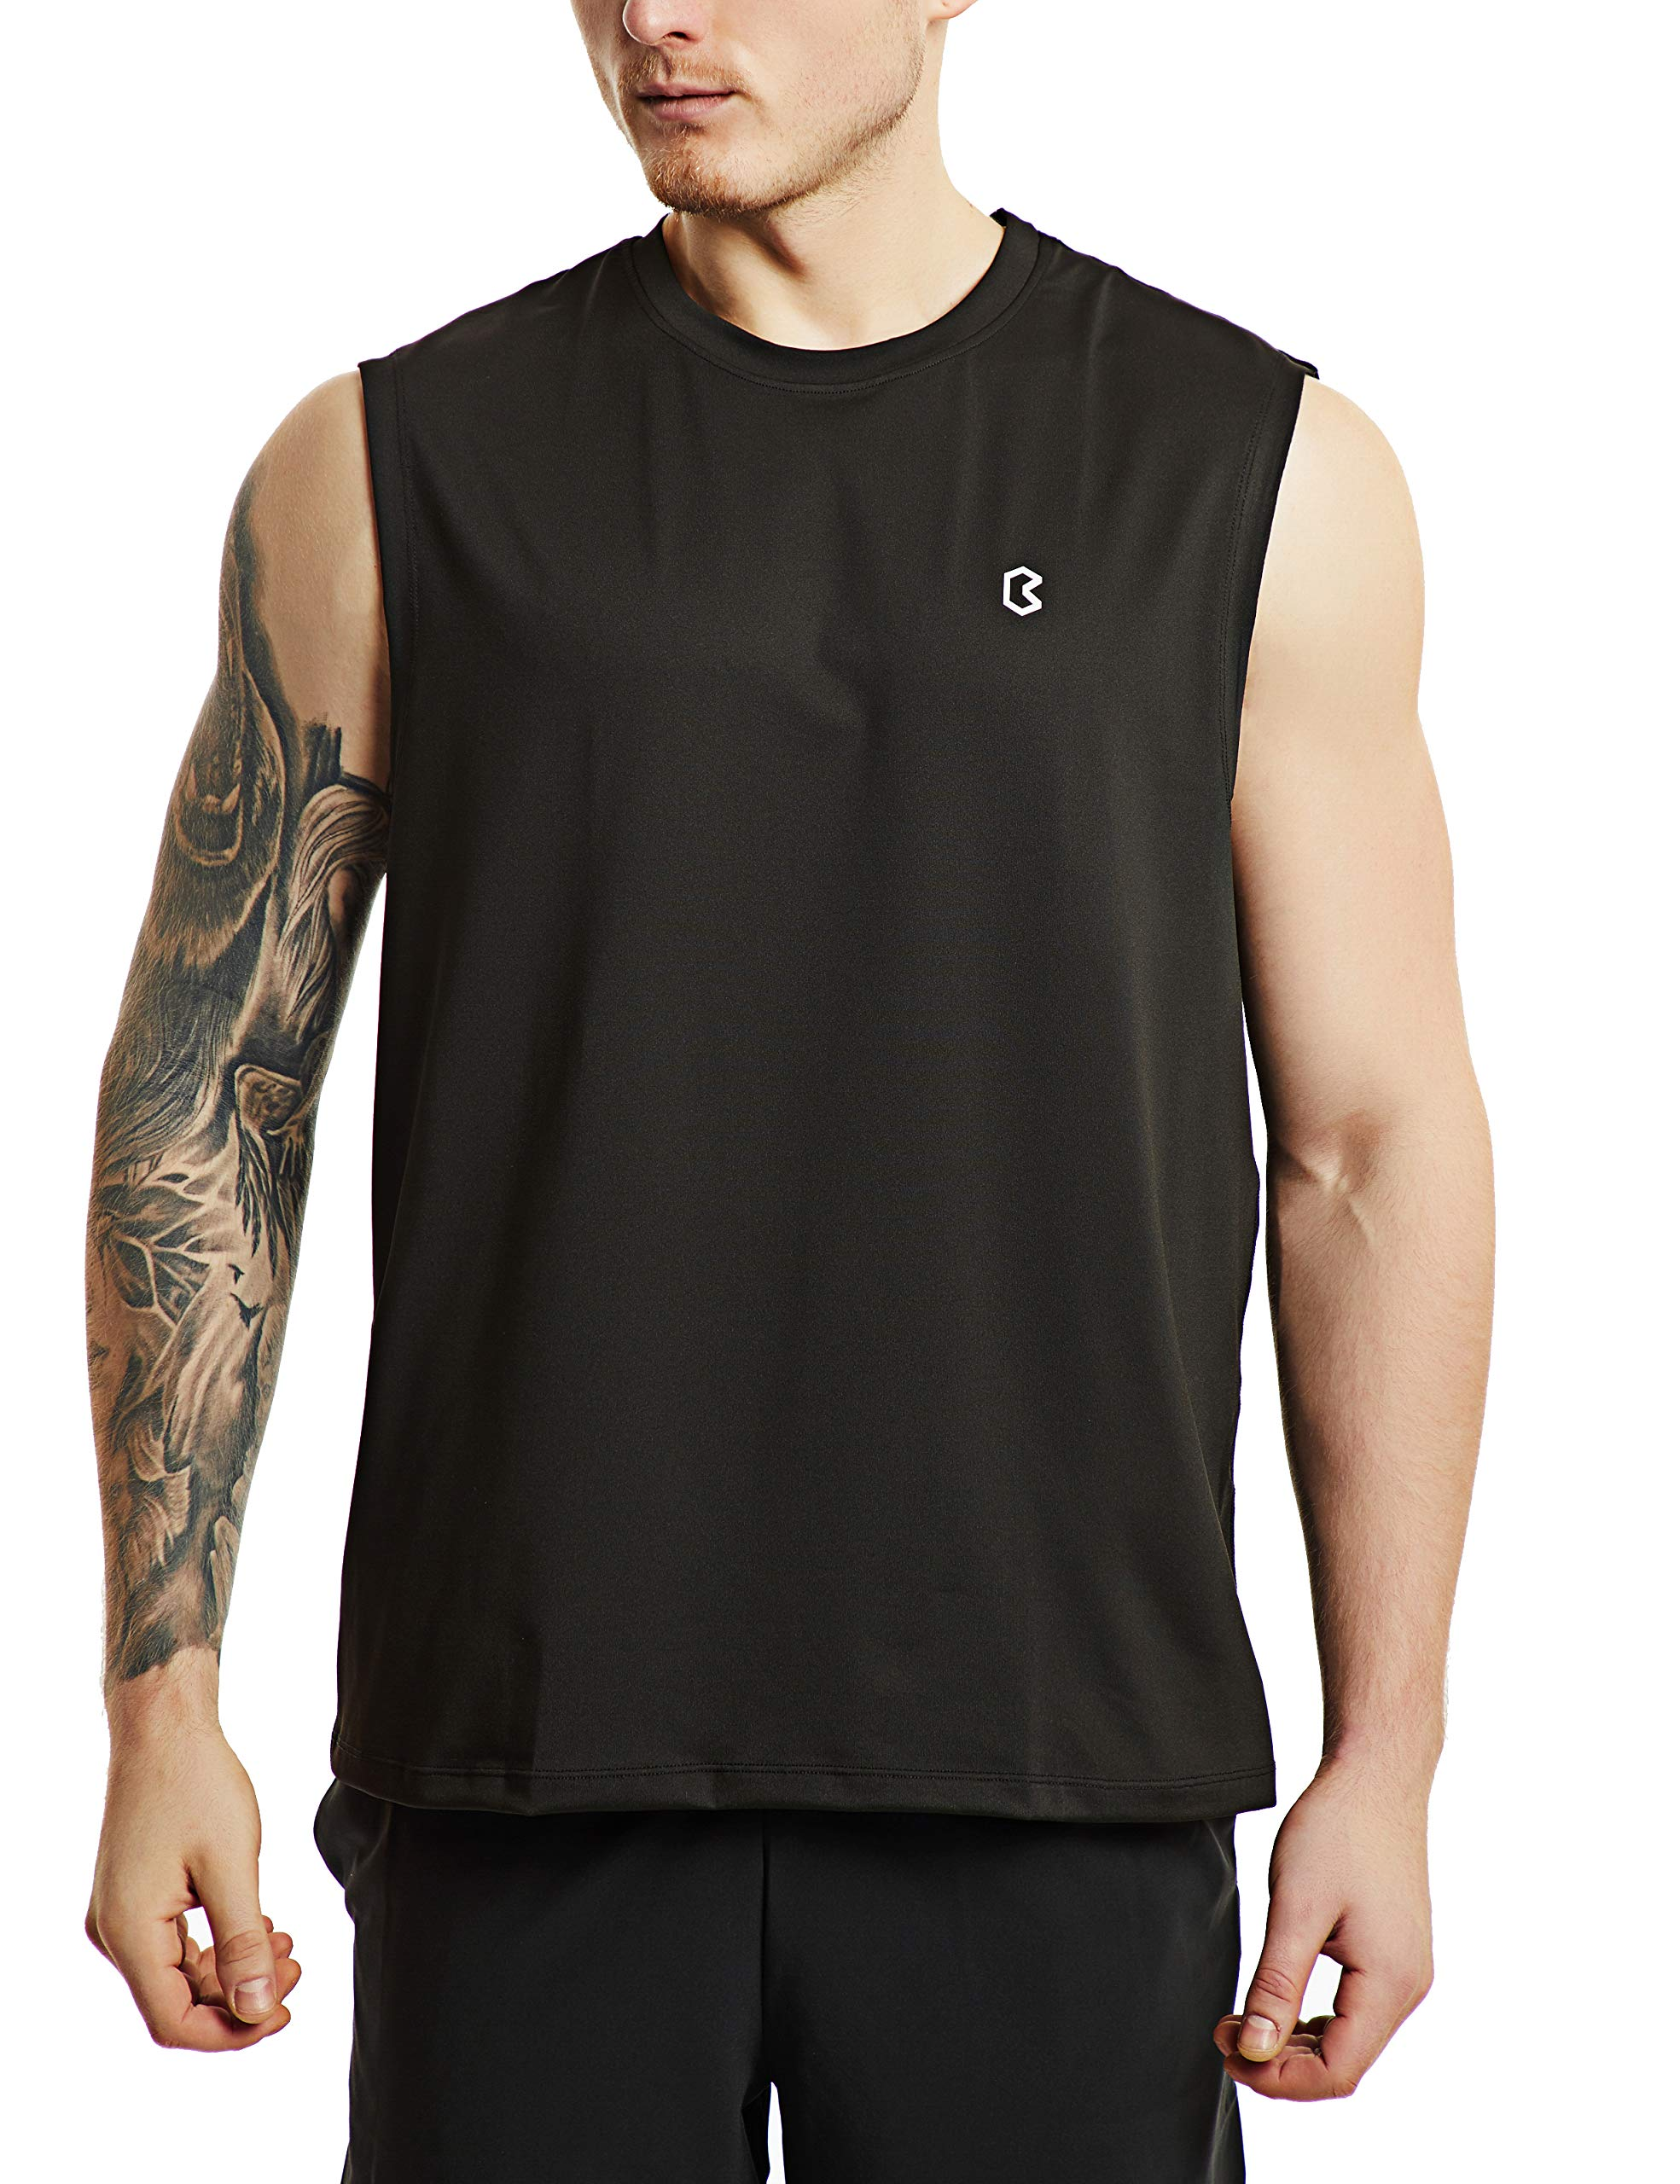 Bewinds Men' s Performance Quick-Dry Workout Sleeveless Shirts Muscle Bodybuilding Tank Top by Bewinds